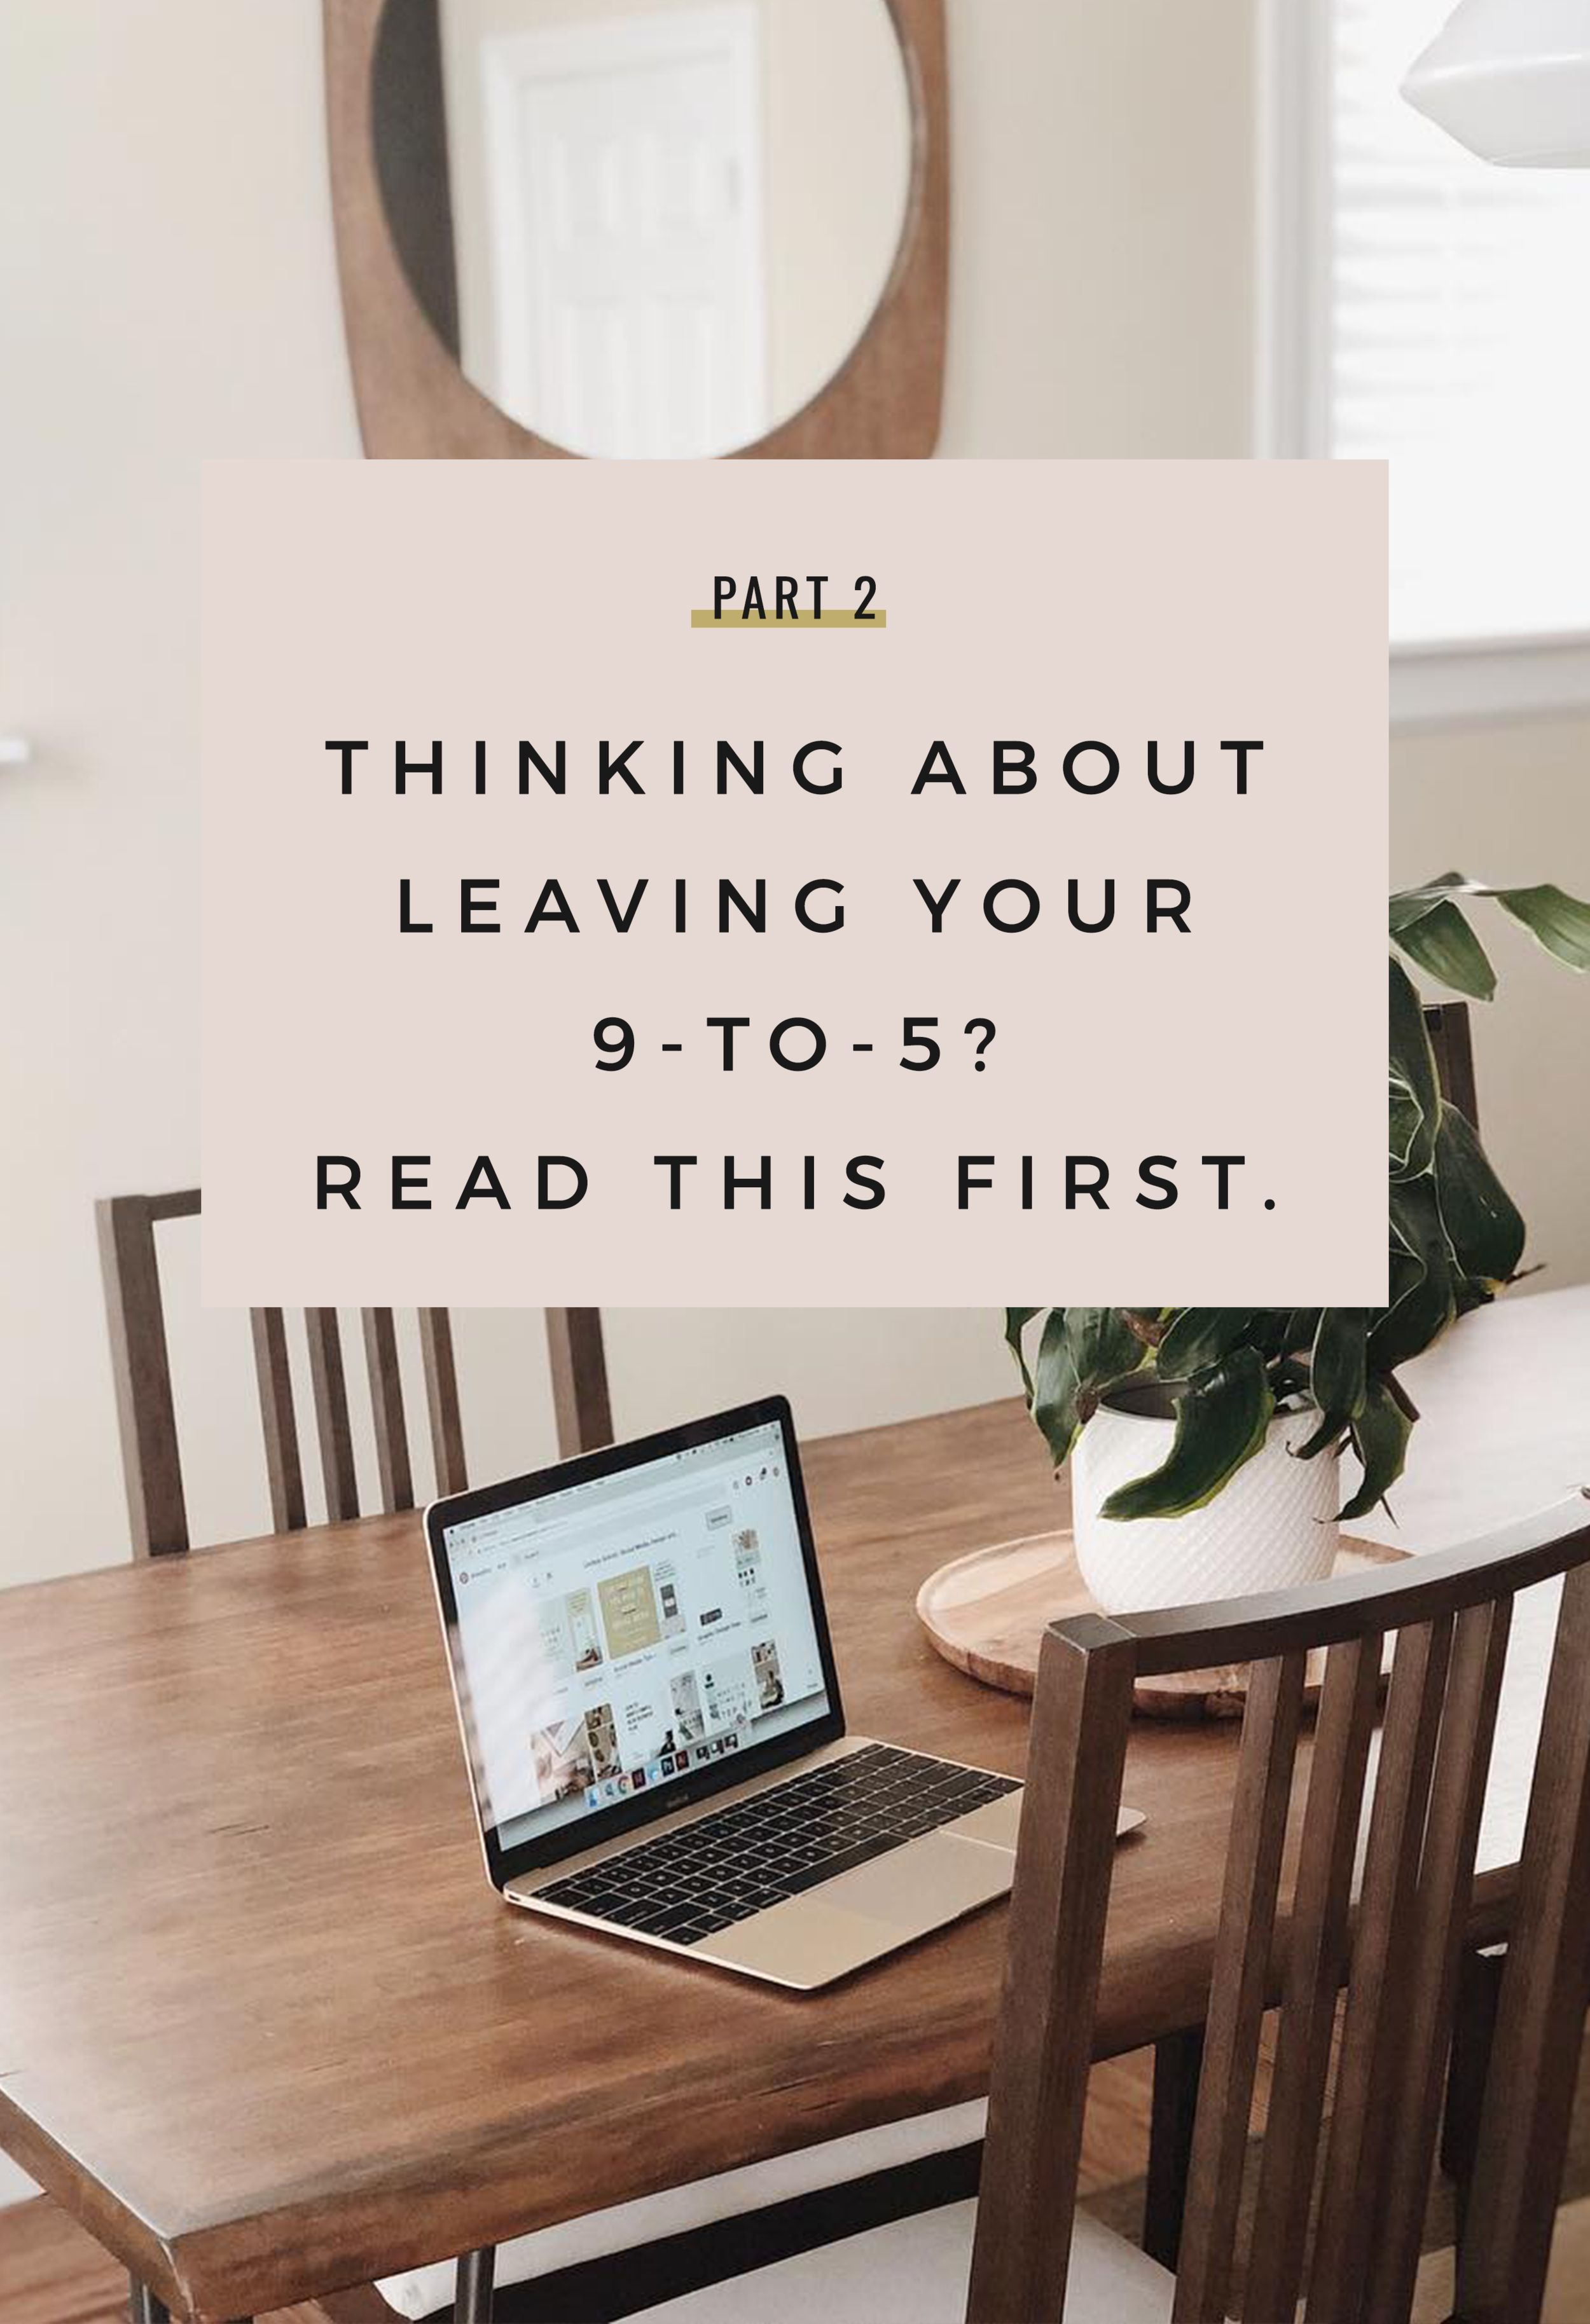 Thinking About Leaving Your 9-To-5? Read This First: Pt. 2